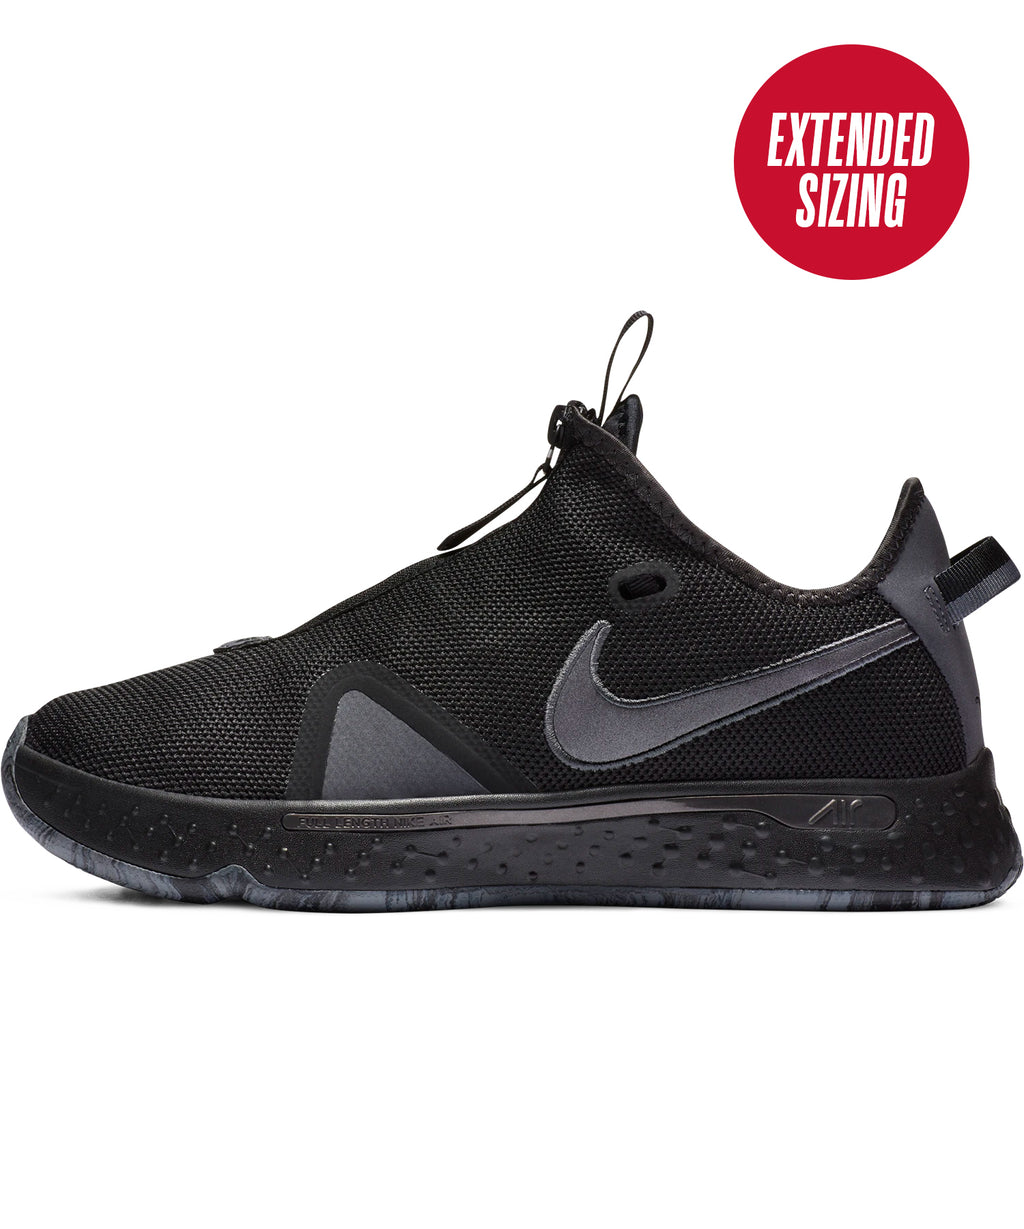 PG 4 EP Black/Metallic Dark Grey